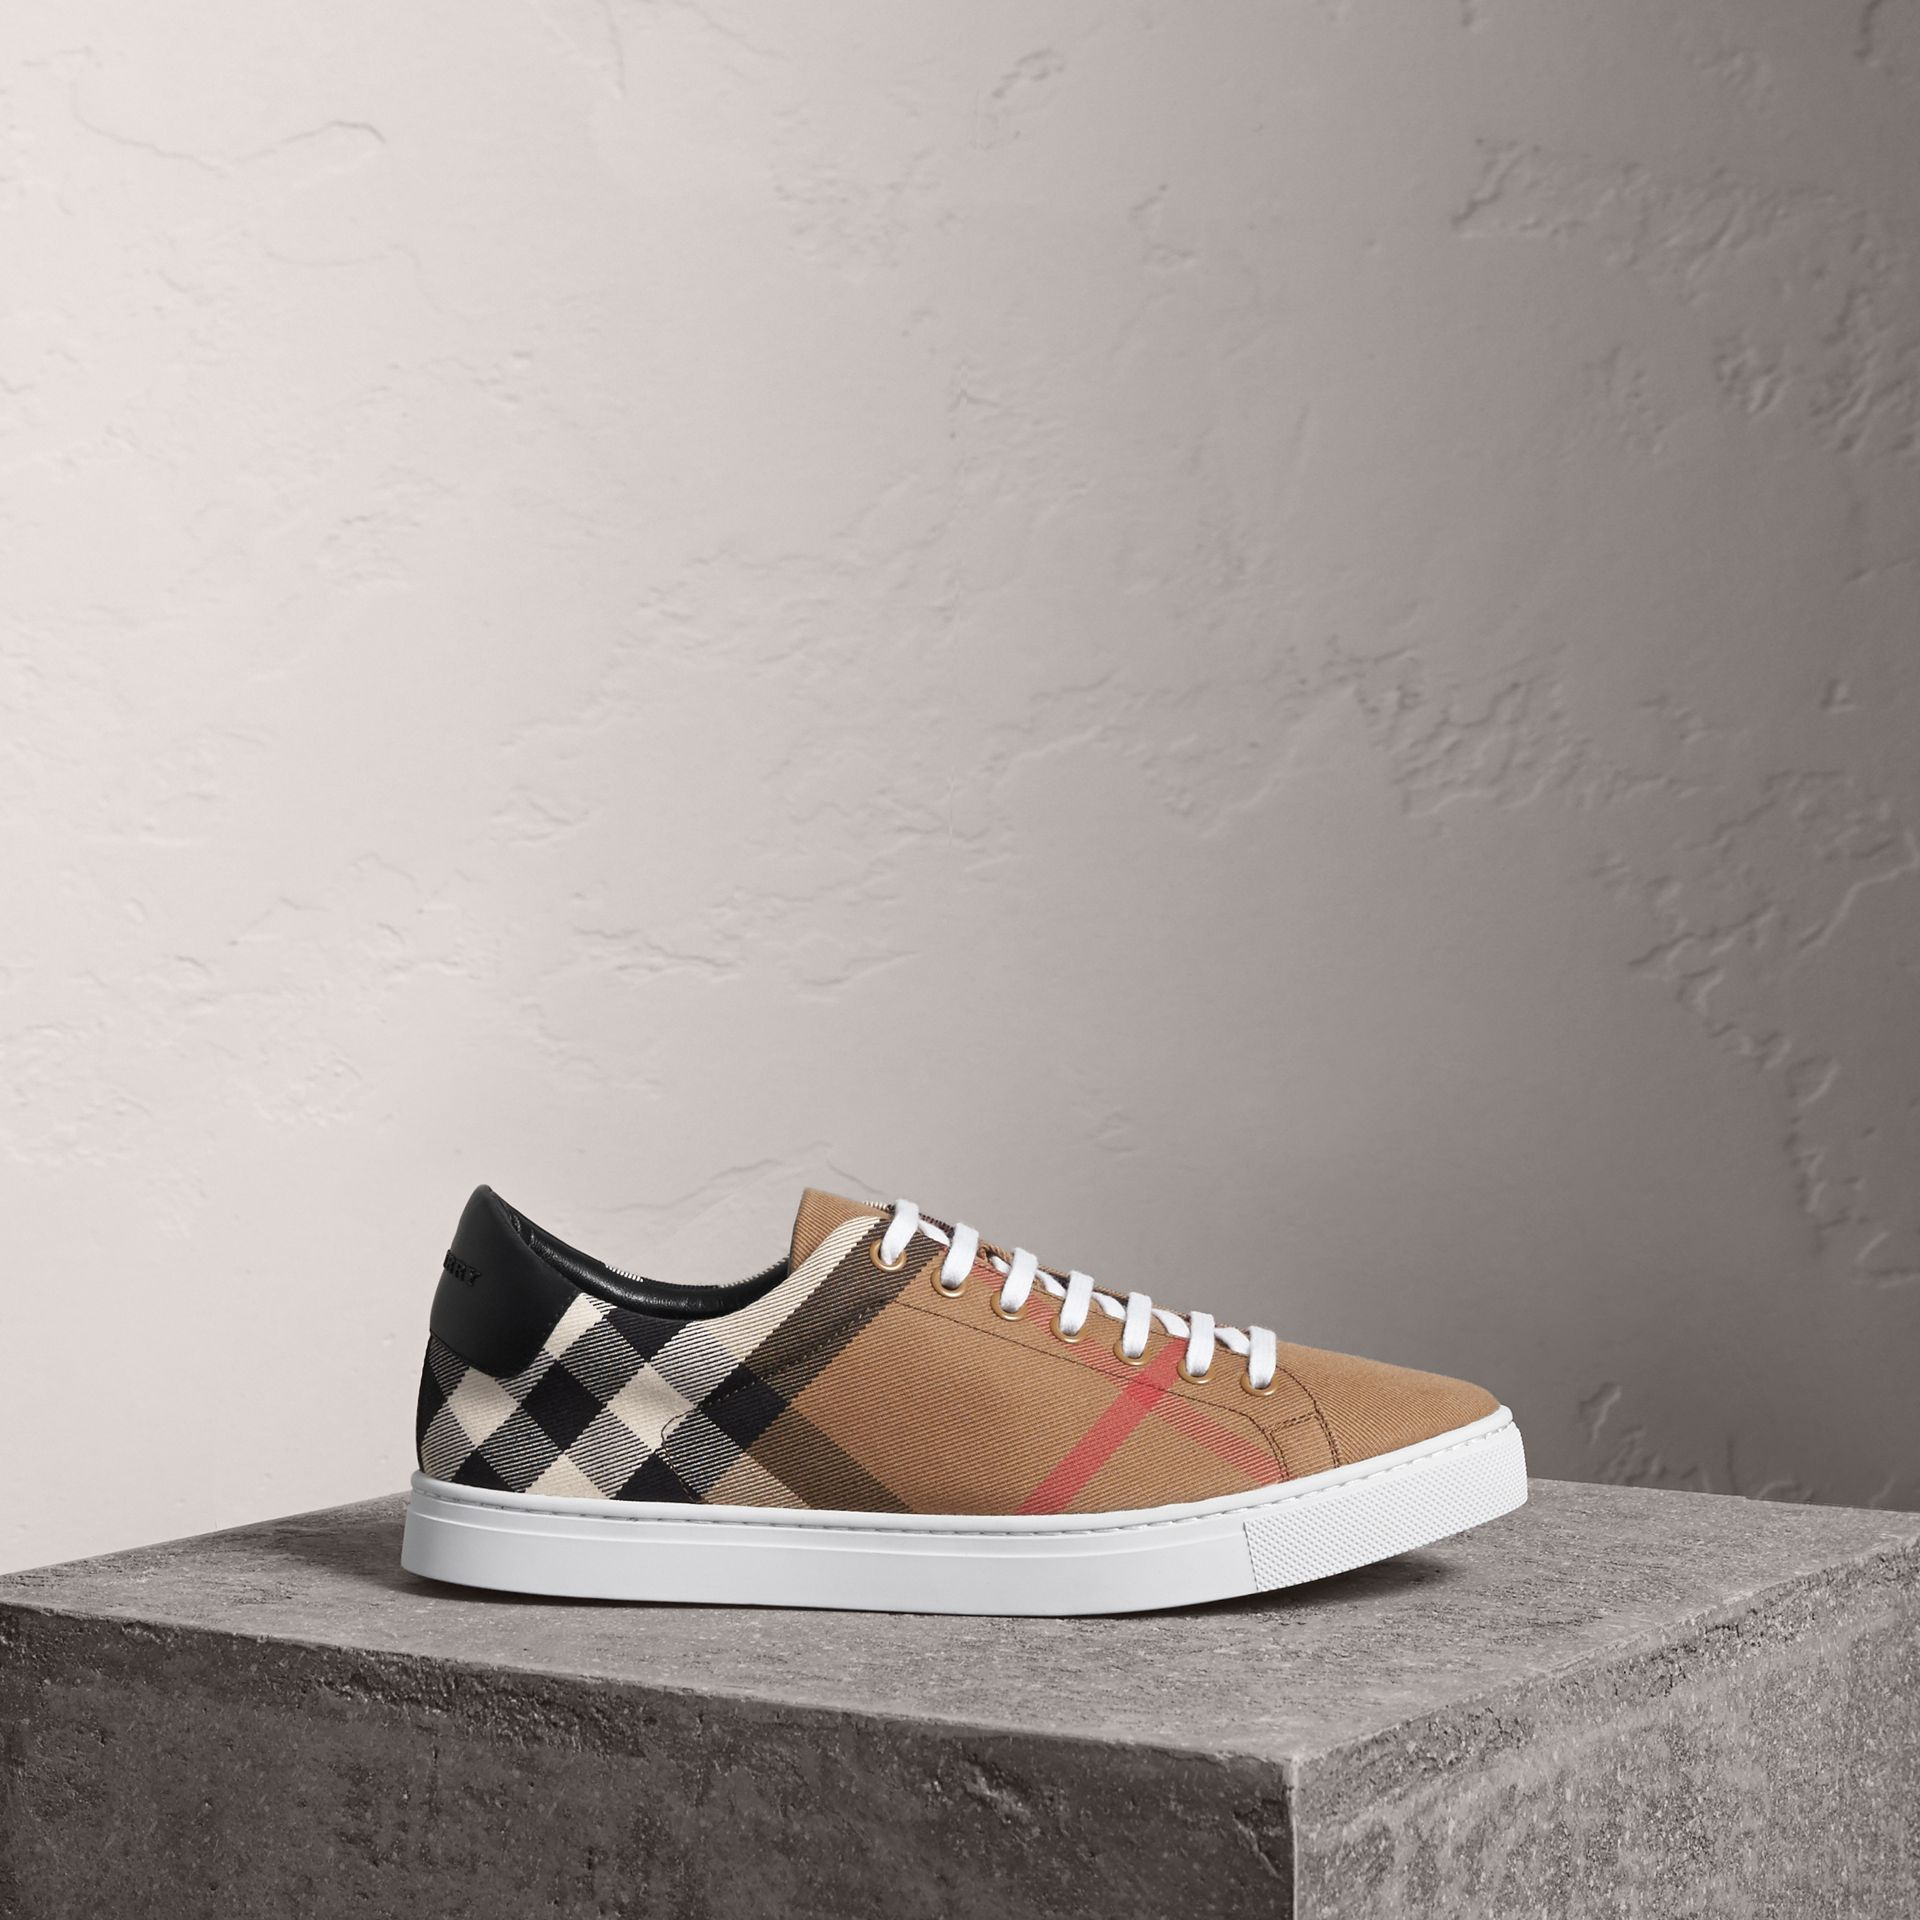 House Check and Leather Sneakers in Check/black - Men | Burberry United States - gallery image 0